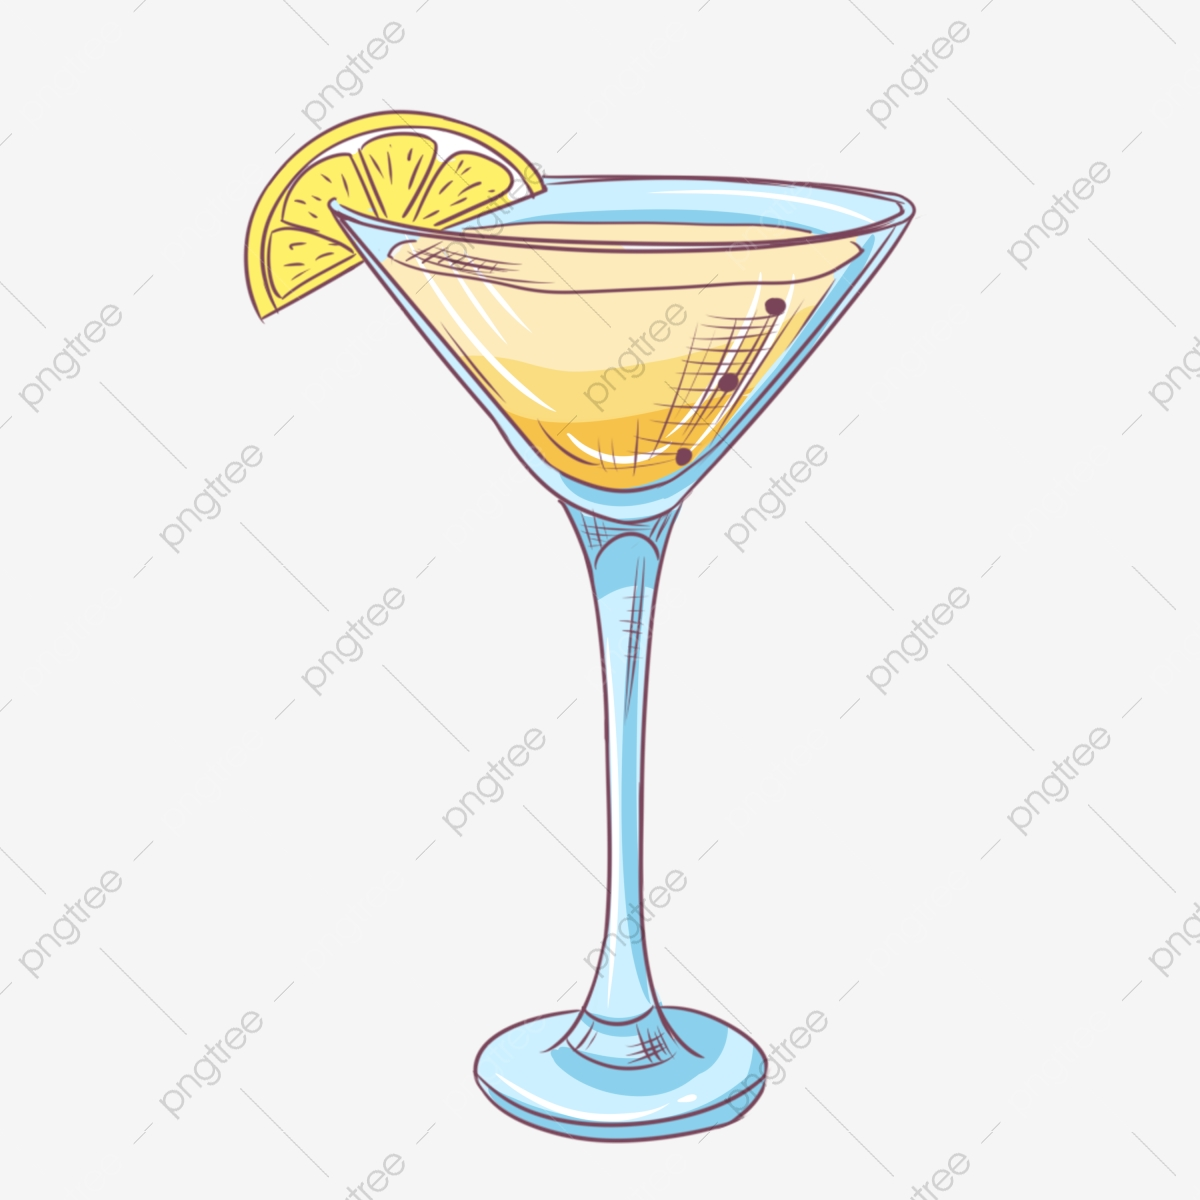 Cocktail Glass Png Images Vector And Psd Files Free Download On Pngtree